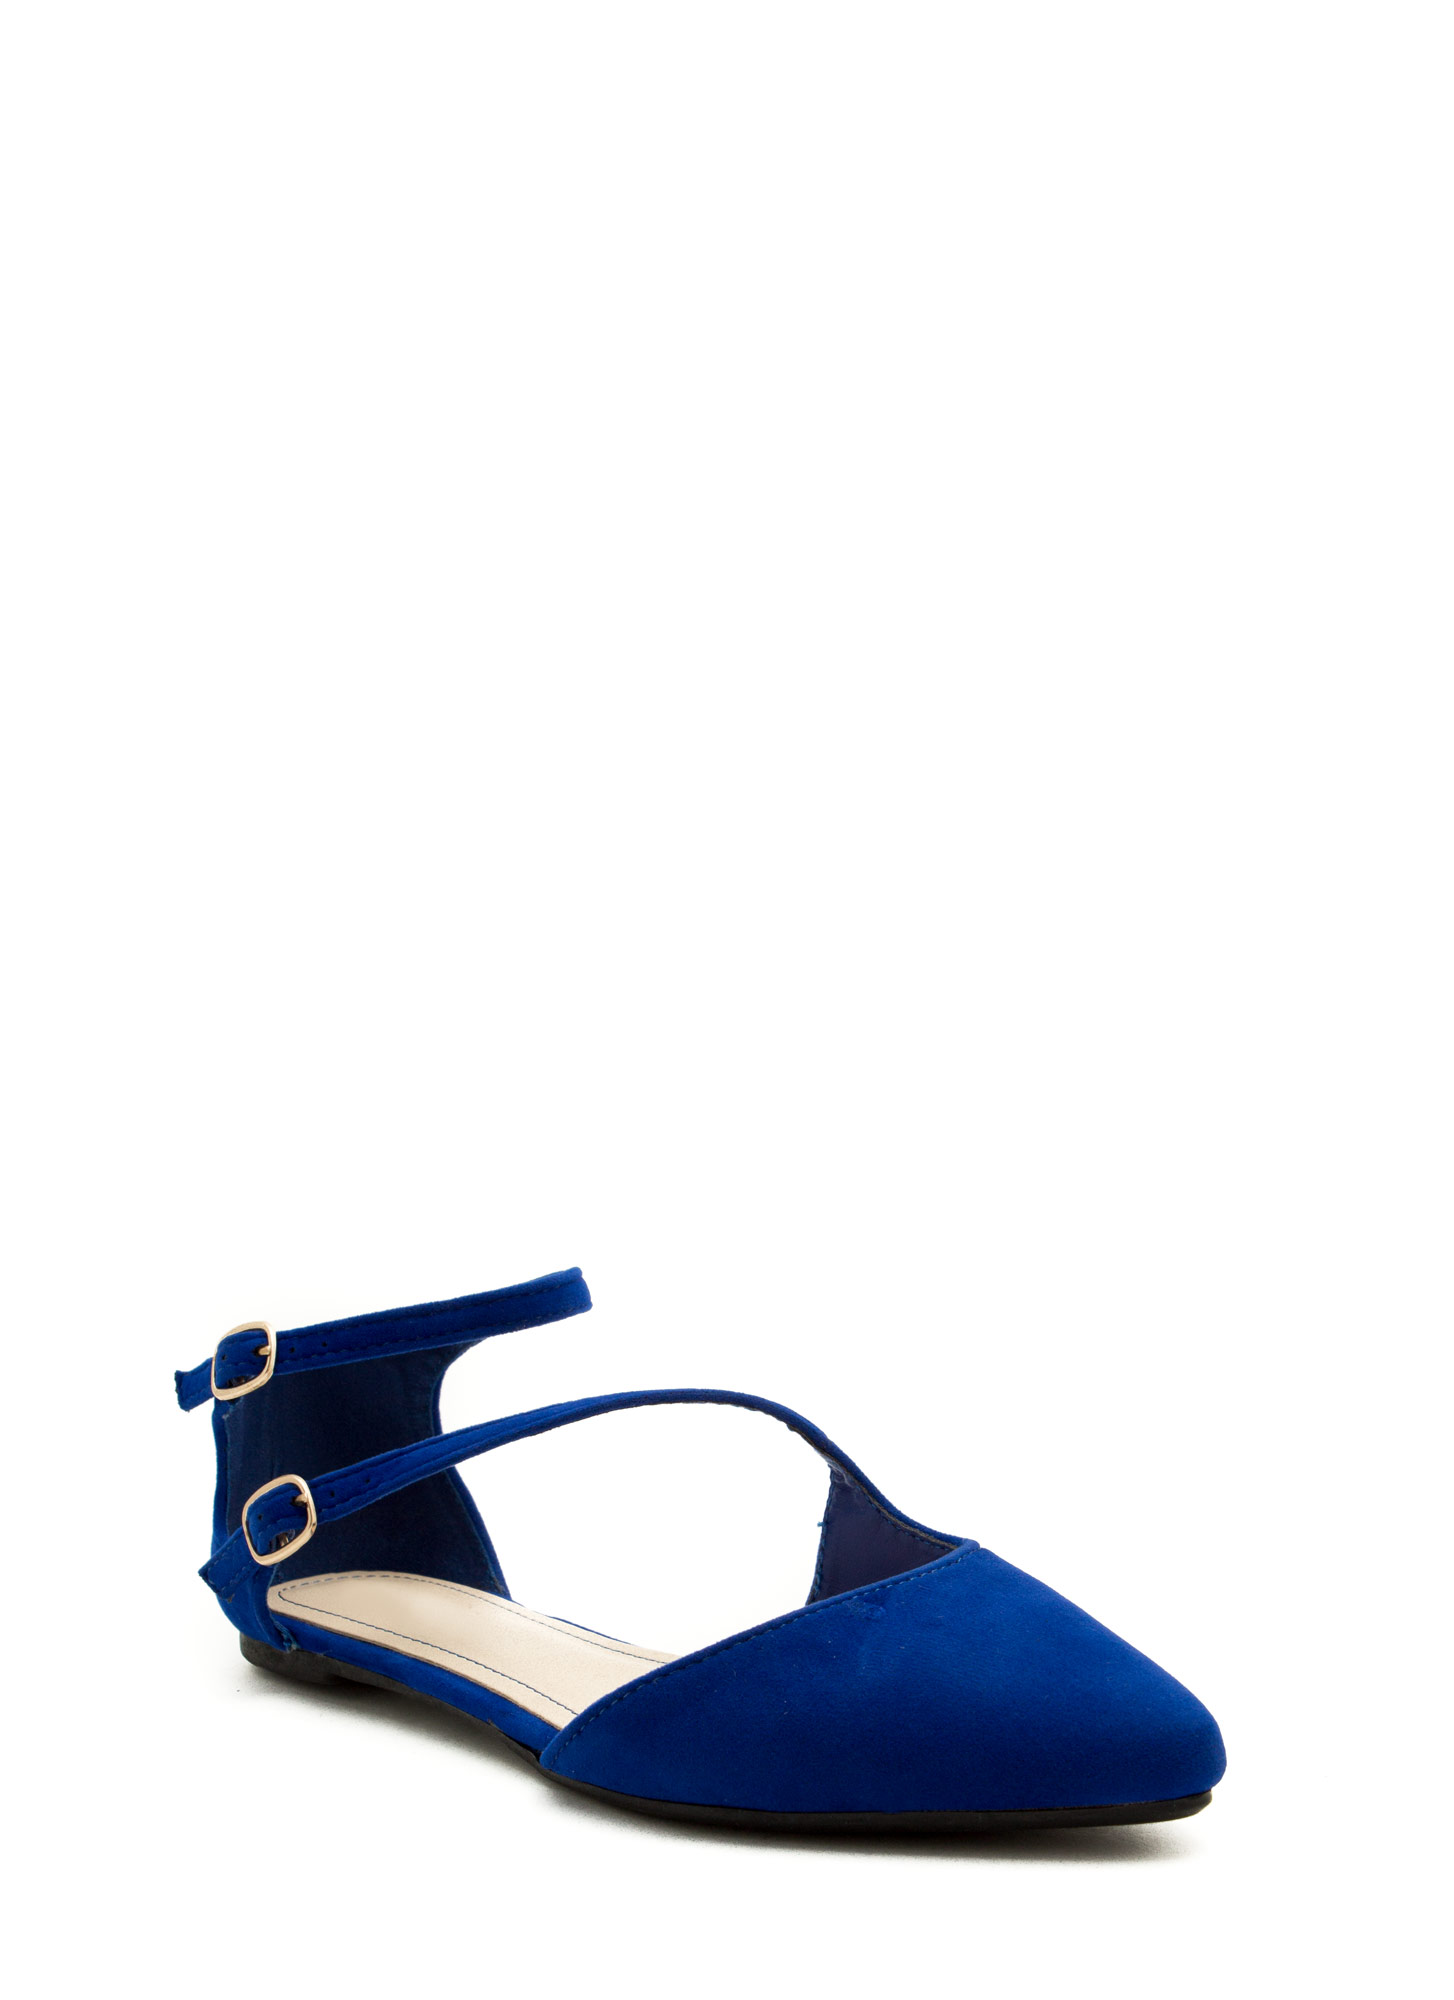 Double Buckle Cross Strap Flats BLUE